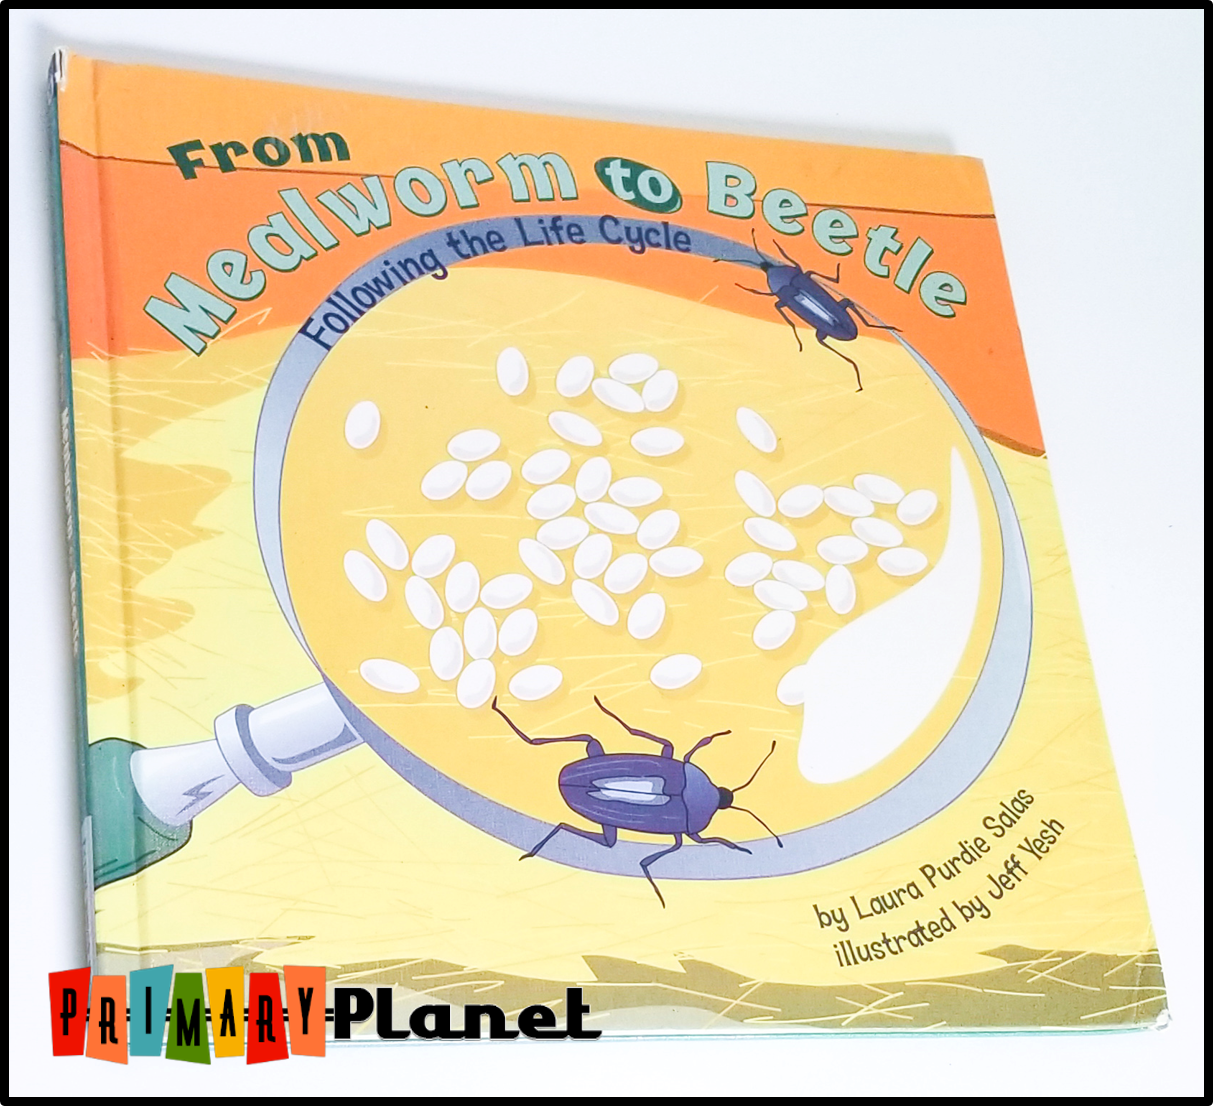 Image of the cover of From Mealworm to Beetle following the life cycle.